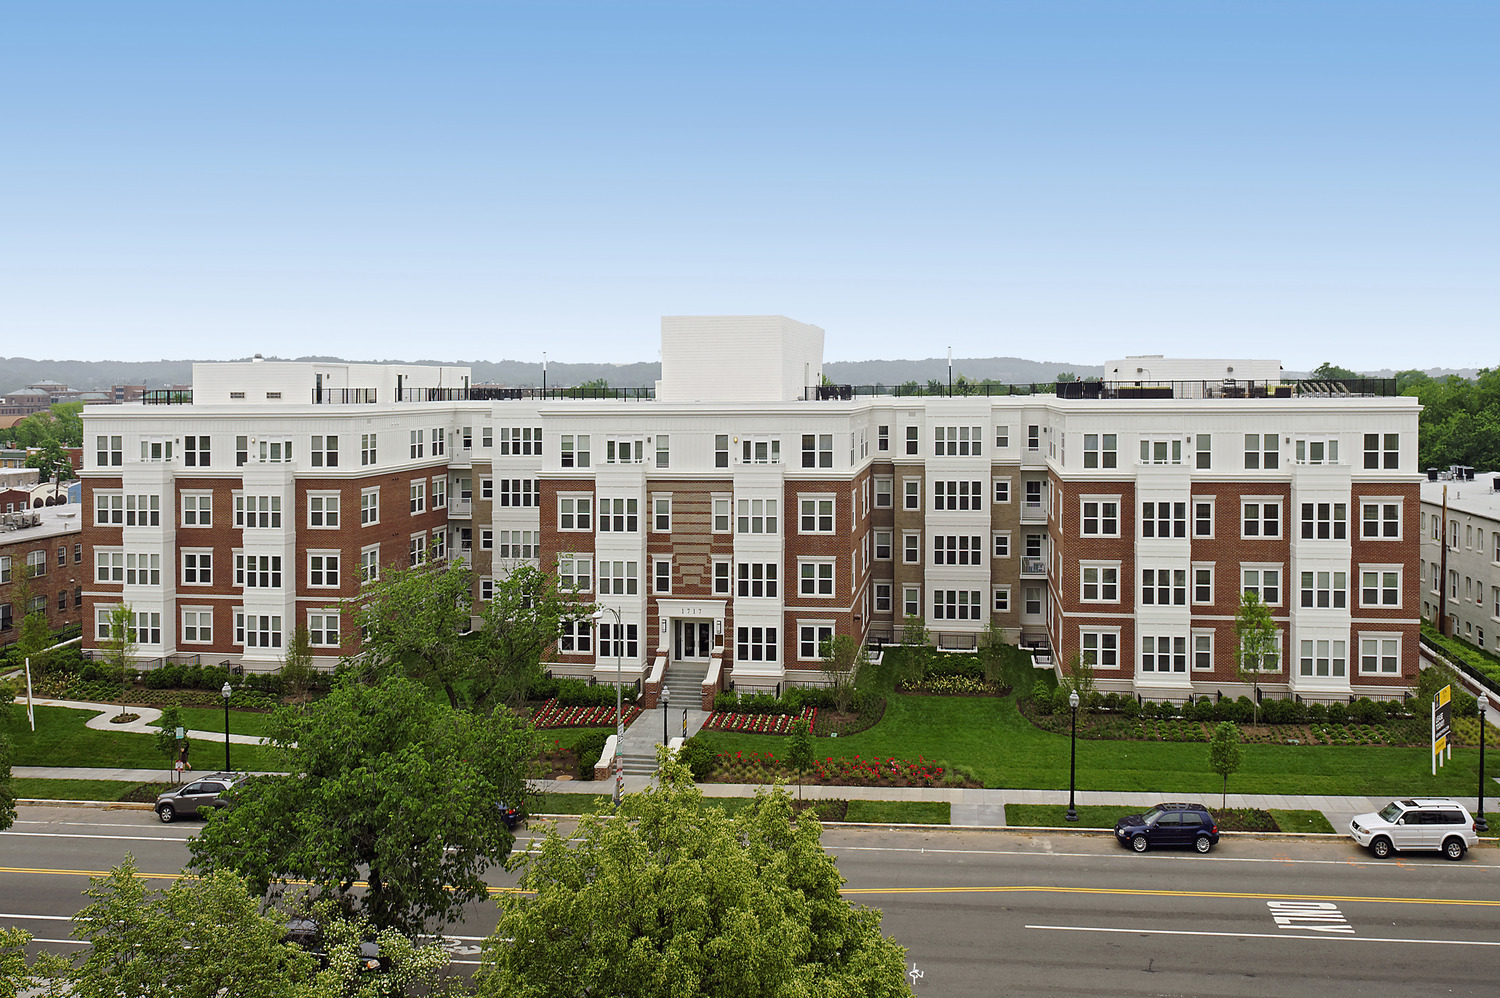 CBG builds Kennedy Row, a 142-Unit Luxury Apartment Community with Two-Story Underground Parking in Washington, DC